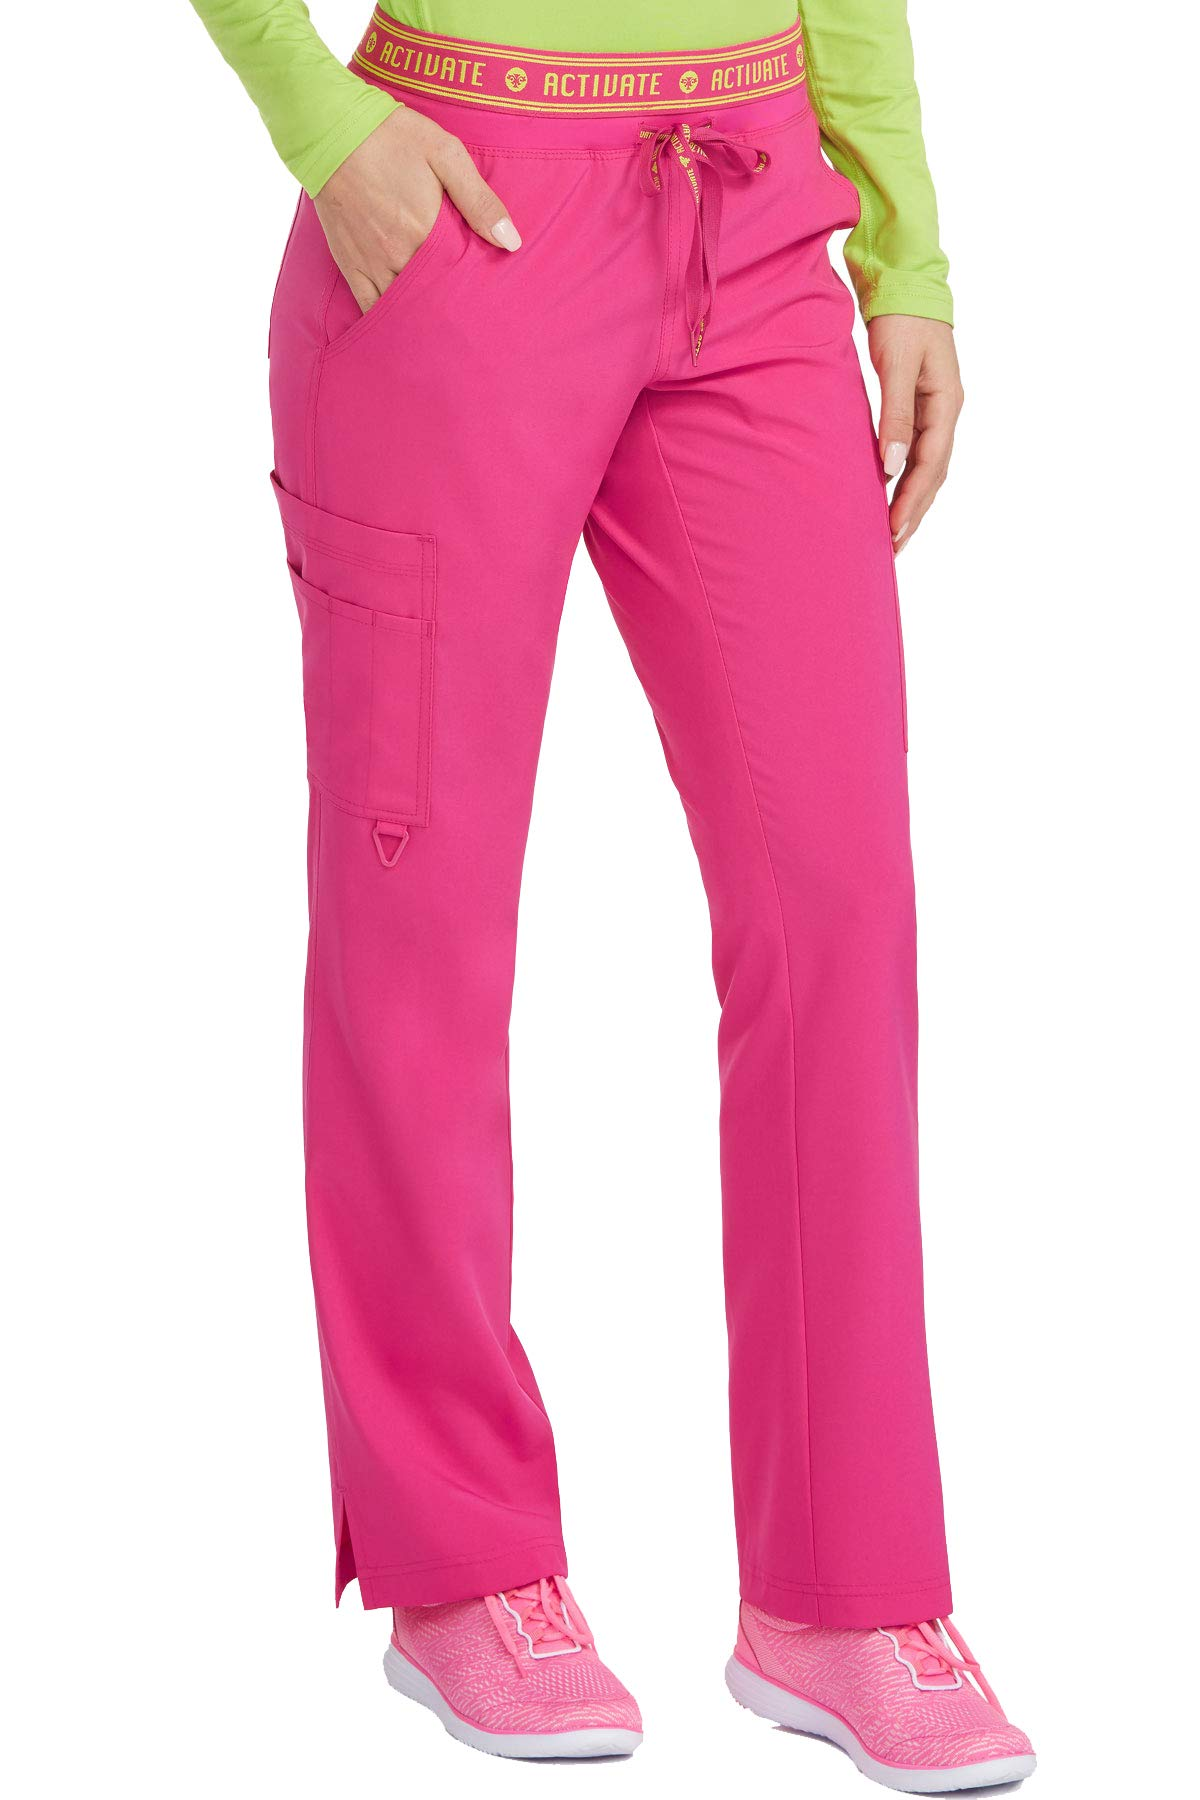 Med Couture Activate Scrub Pants Women, Flow Yoga 2 Cargo Pocket Pant, Pink Punch, XXX-Large